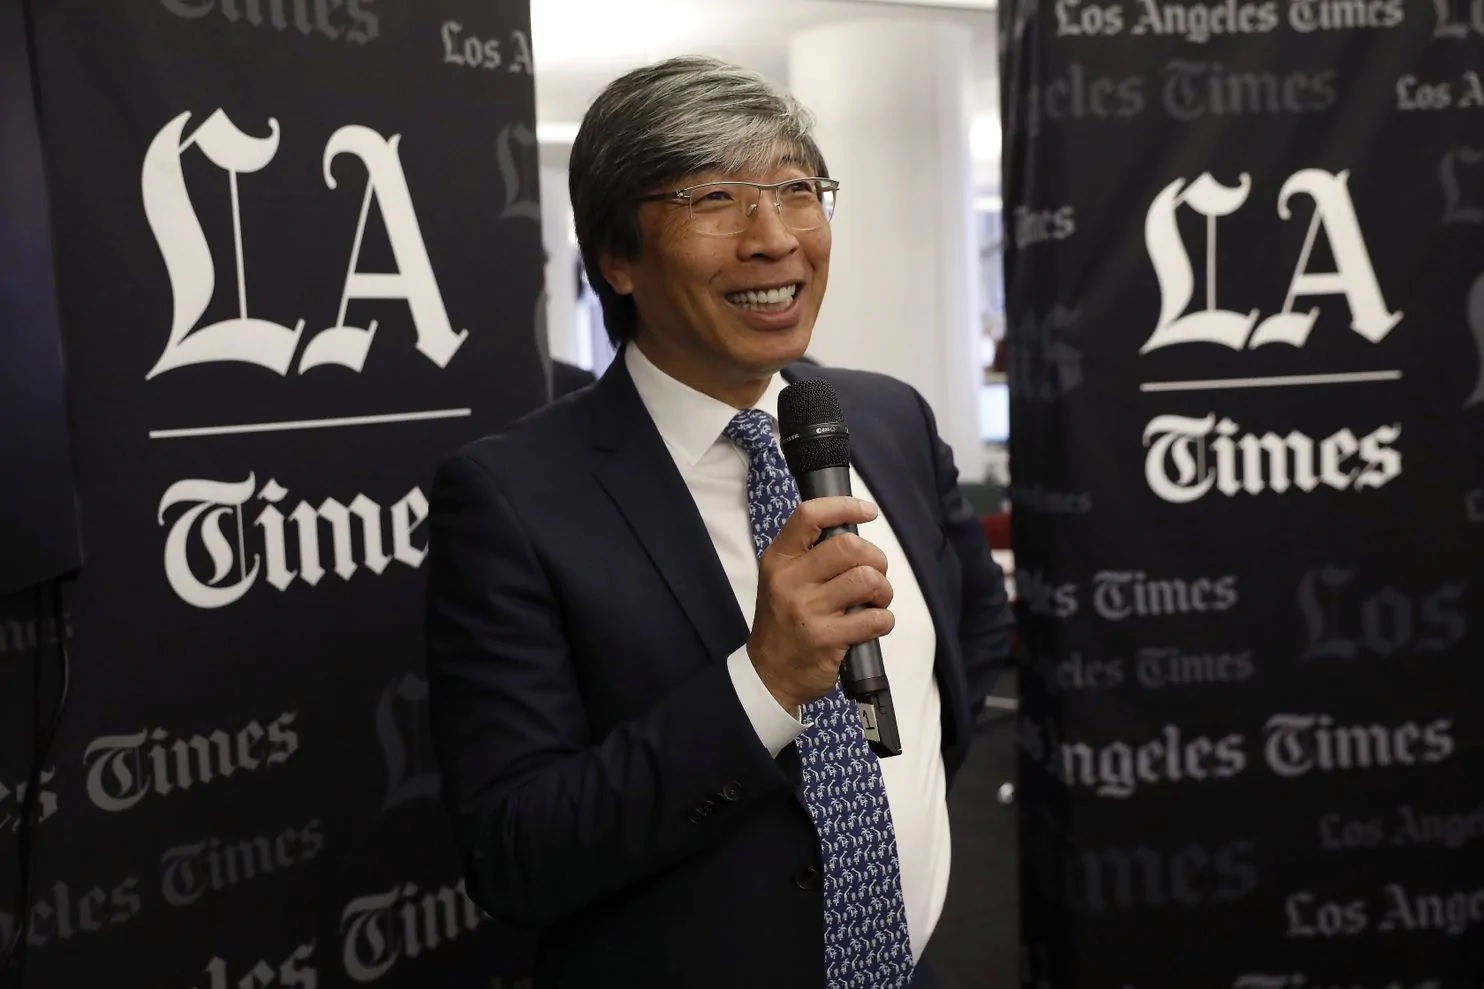 New owner of L.A. Times sees video games, esports as evolution of modern news media